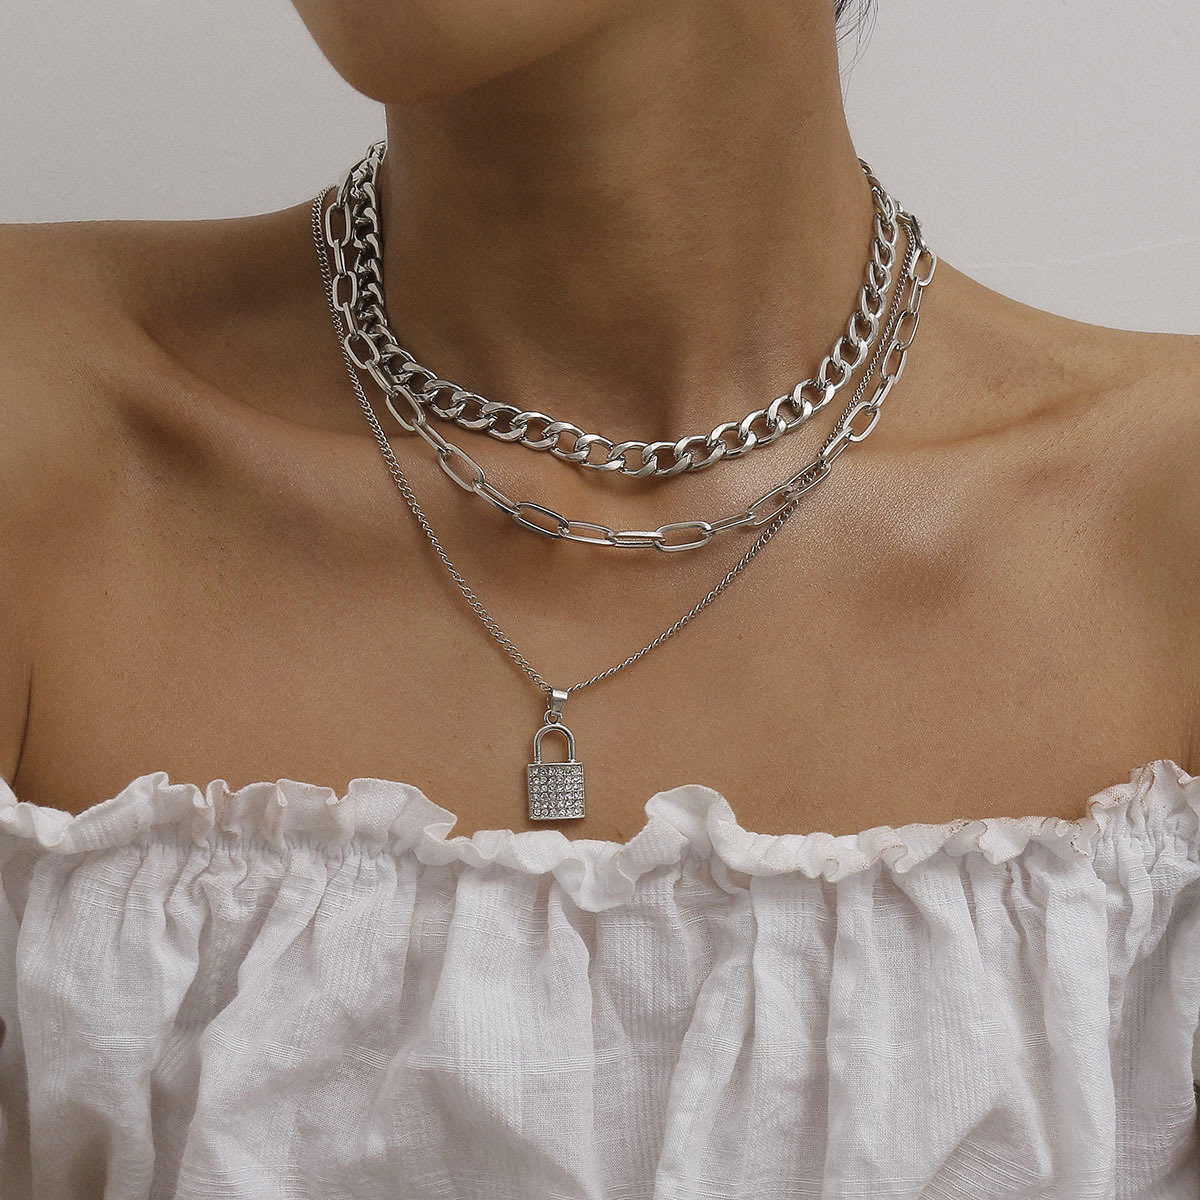 Rhinestone Lock Pendant Necklace for Women Clavicle Chain Punk Thick Choker Necklaces Female Gold Silver Color Fashion Jewelry